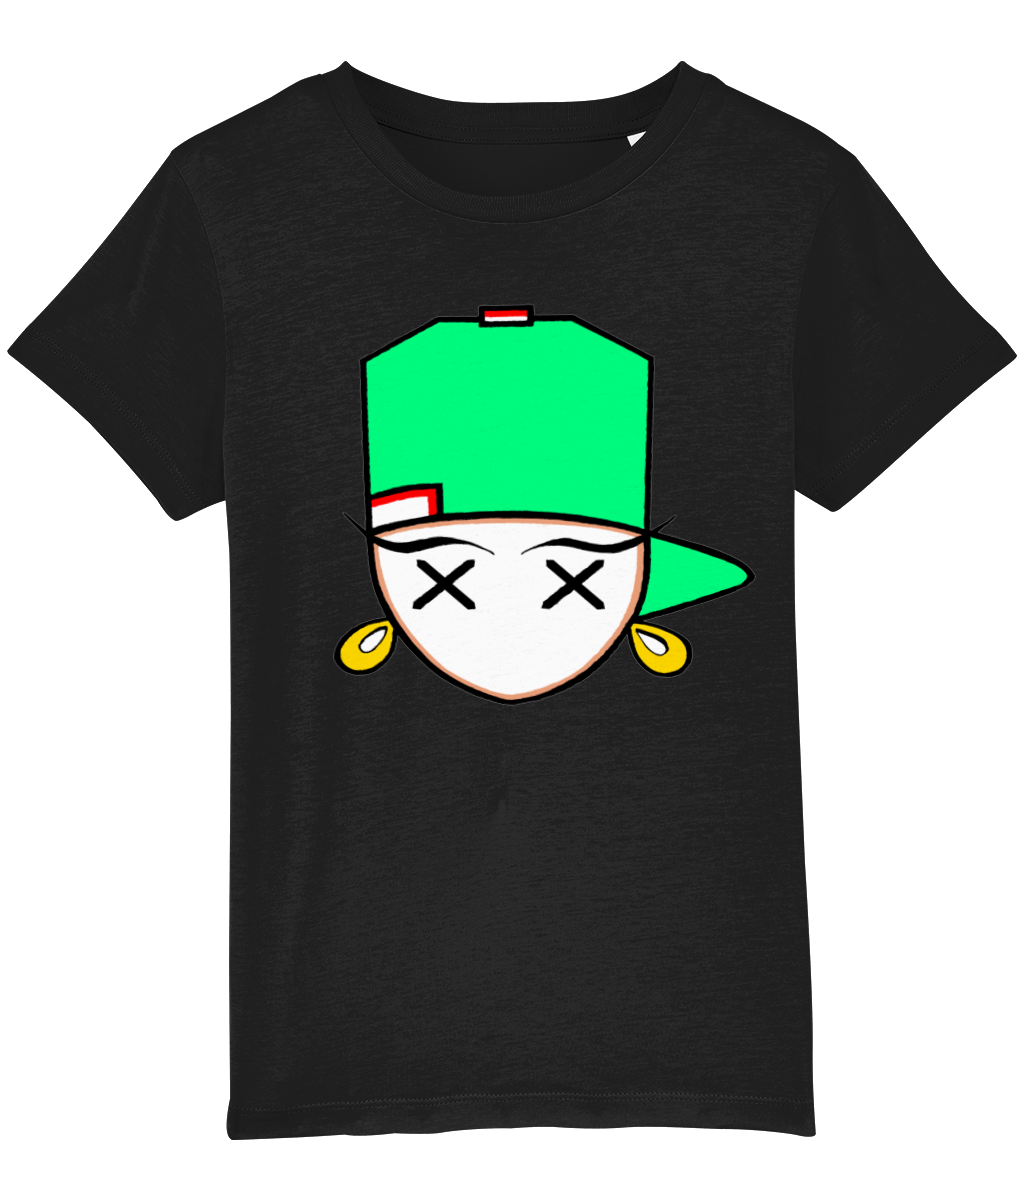 kids t'shirt Mini Creator 17 spring green girl